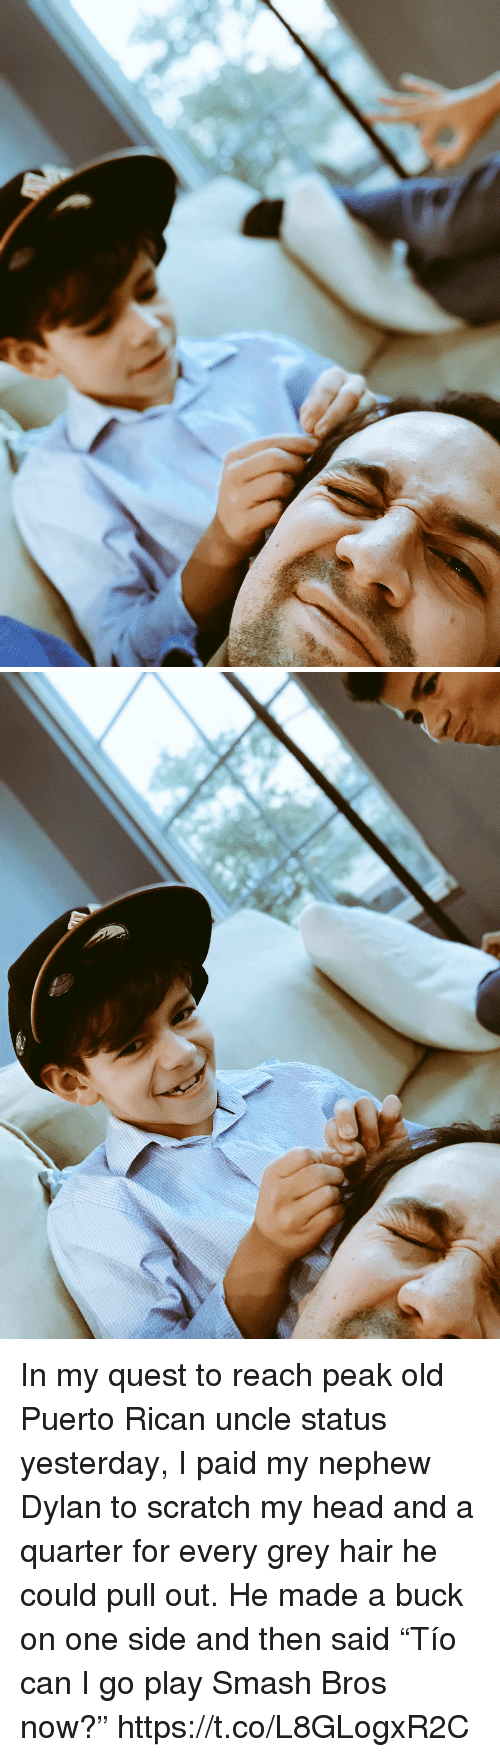 """puerto rican: In my quest to reach peak old Puerto Rican uncle status yesterday, I paid my nephew Dylan to scratch my head and a quarter for every grey hair he could pull out. He made a buck on one side and then said """"Tío can I go play Smash Bros now?"""" https://t.co/L8GLogxR2C"""